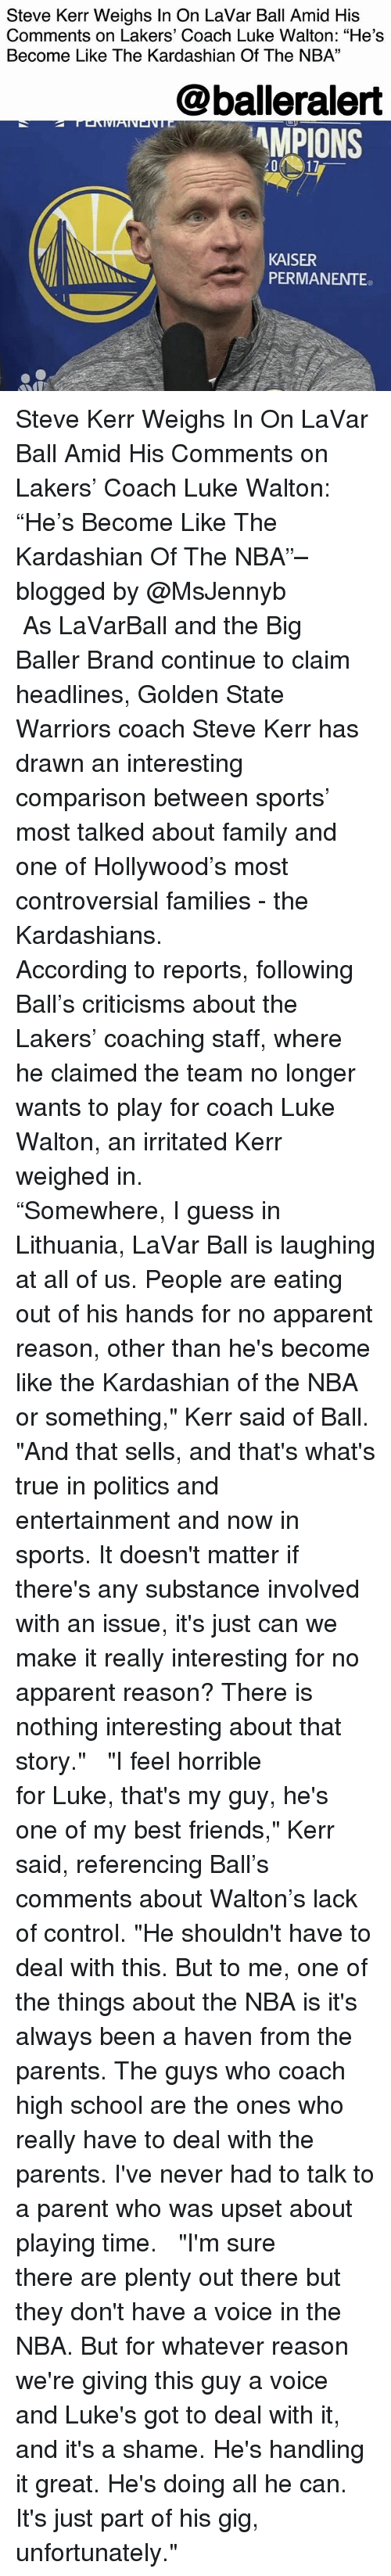 "Kerr: Steve Kerr Weighs In On LaVar Ball Amid His  Comments on Lakers' Coach Luke Walton: ""He's  Become Like The Kardashian Of The NBA""  13  @balleralert  MPIONS  KAISER  PERMANENTE Steve Kerr Weighs In On LaVar Ball Amid His Comments on Lakers' Coach Luke Walton: ""He's Become Like The Kardashian Of The NBA""– blogged by @MsJennyb ⠀⠀⠀⠀⠀⠀⠀ ⠀⠀⠀⠀⠀⠀⠀ As LaVarBall and the Big Baller Brand continue to claim headlines, Golden State Warriors coach Steve Kerr has drawn an interesting comparison between sports' most talked about family and one of Hollywood's most controversial families - the Kardashians. ⠀⠀⠀⠀⠀⠀⠀ ⠀⠀⠀⠀⠀⠀⠀ According to reports, following Ball's criticisms about the Lakers' coaching staff, where he claimed the team no longer wants to play for coach Luke Walton, an irritated Kerr weighed in. ⠀⠀⠀⠀⠀⠀⠀ ⠀⠀⠀⠀⠀⠀⠀ ""Somewhere, I guess in Lithuania, LaVar Ball is laughing at all of us. People are eating out of his hands for no apparent reason, other than he's become like the Kardashian of the NBA or something,"" Kerr said of Ball. ""And that sells, and that's what's true in politics and entertainment and now in sports. It doesn't matter if there's any substance involved with an issue, it's just can we make it really interesting for no apparent reason? There is nothing interesting about that story."" ⠀⠀⠀⠀⠀⠀⠀ ⠀⠀⠀⠀⠀⠀⠀ ""I feel horrible for Luke, that's my guy, he's one of my best friends,"" Kerr said, referencing Ball's comments about Walton's lack of control. ""He shouldn't have to deal with this. But to me, one of the things about the NBA is it's always been a haven from the parents. The guys who coach high school are the ones who really have to deal with the parents. I've never had to talk to a parent who was upset about playing time. ⠀⠀⠀⠀⠀⠀⠀ ⠀⠀⠀⠀⠀⠀⠀ ""I'm sure there are plenty out there but they don't have a voice in the NBA. But for whatever reason we're giving this guy a voice and Luke's got to deal with it, and it's a shame. He's handling it great. He's doing all he can. It's just part of his gig, unfortunately."""